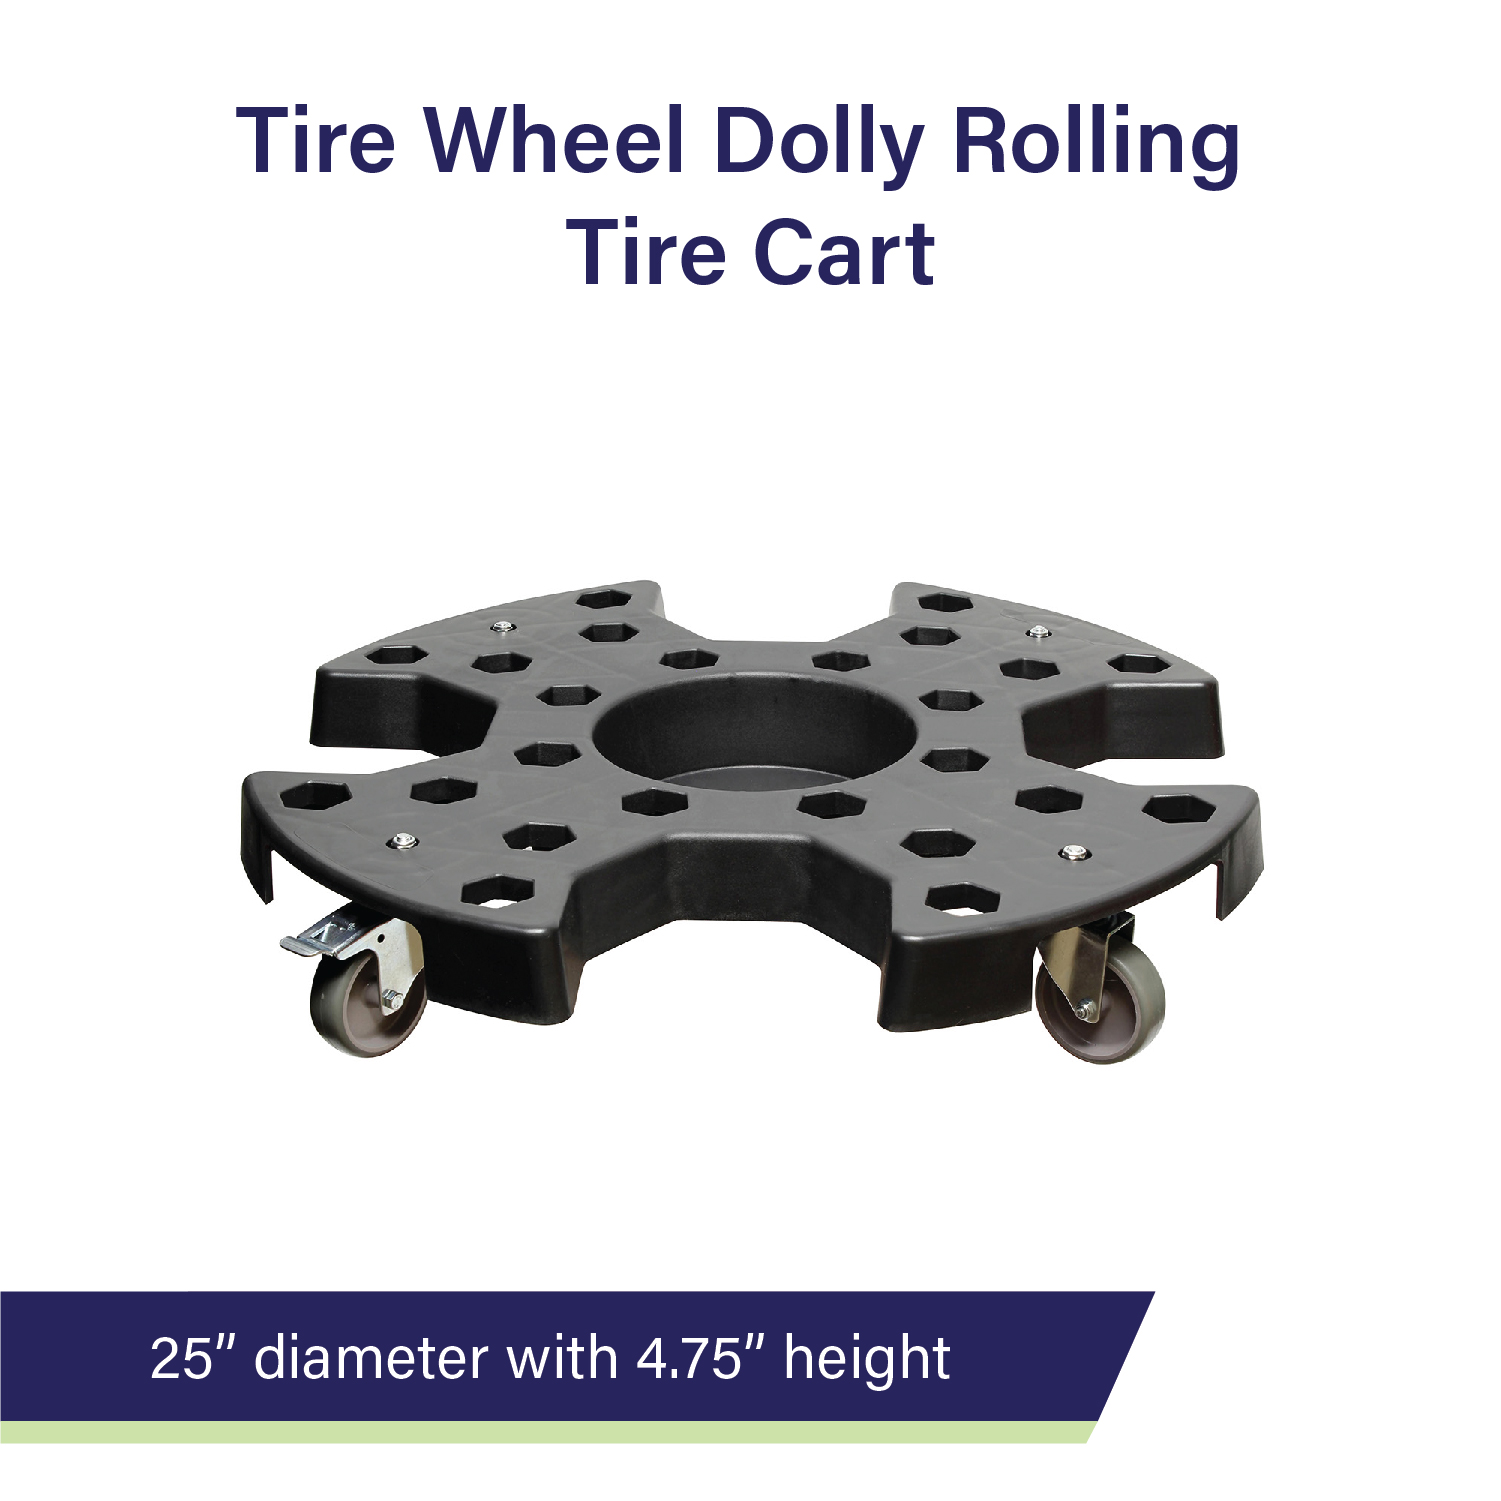 300 Lbs Bisupply Tire Storage Rack Car Tire Dolly For Tires Wheel Storage Rack Tire Wheel Dolly Rolling Tire Cart Dollies